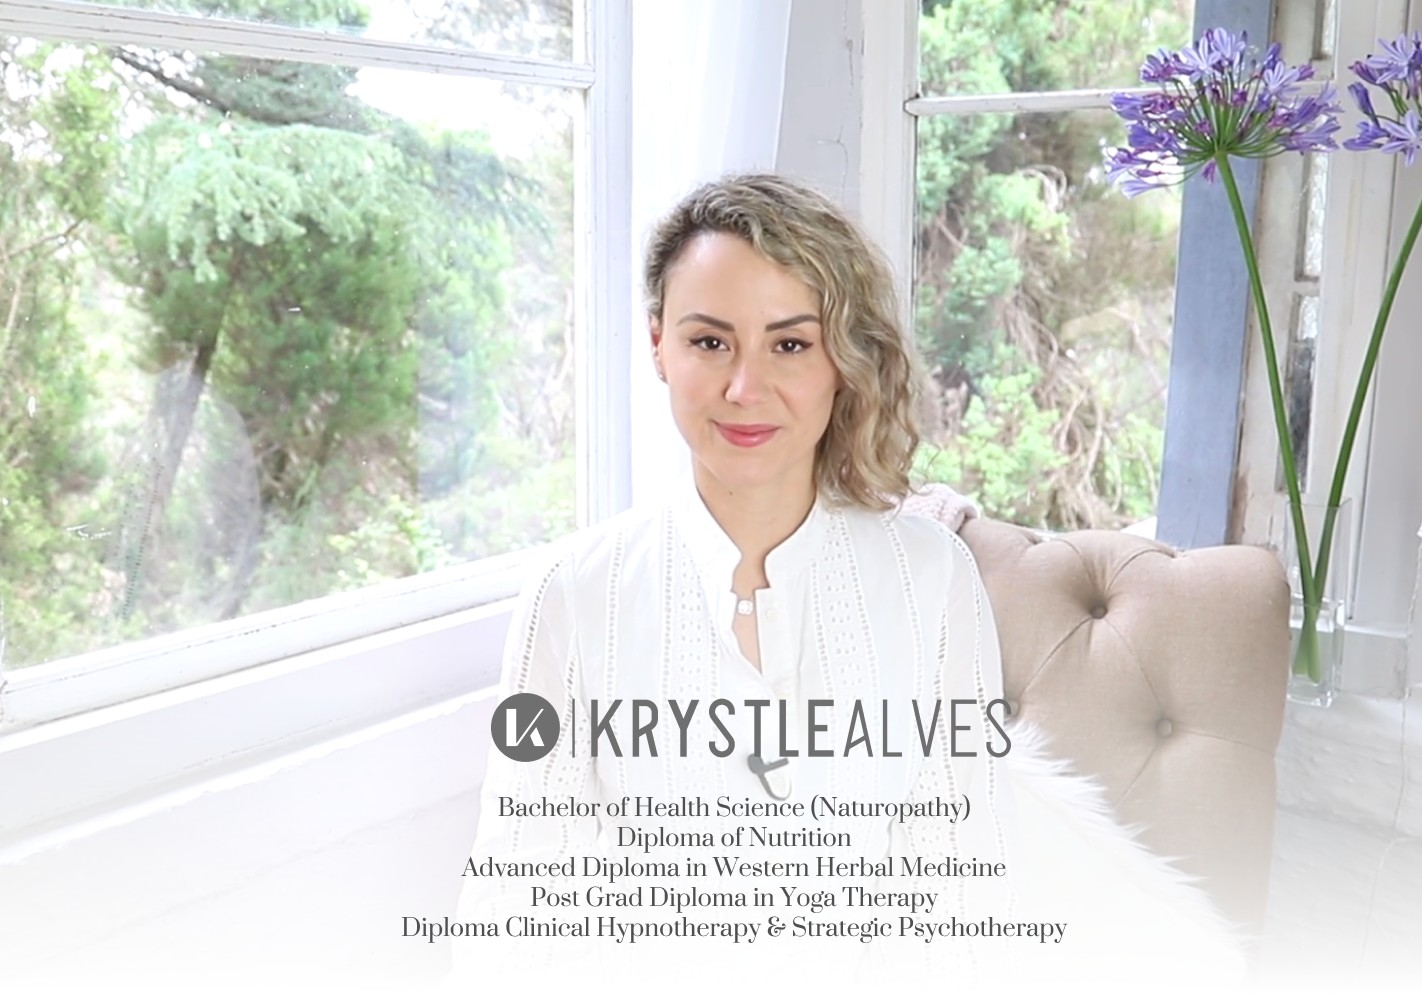 Krystle Alves therapist on Natural Therapy Pages